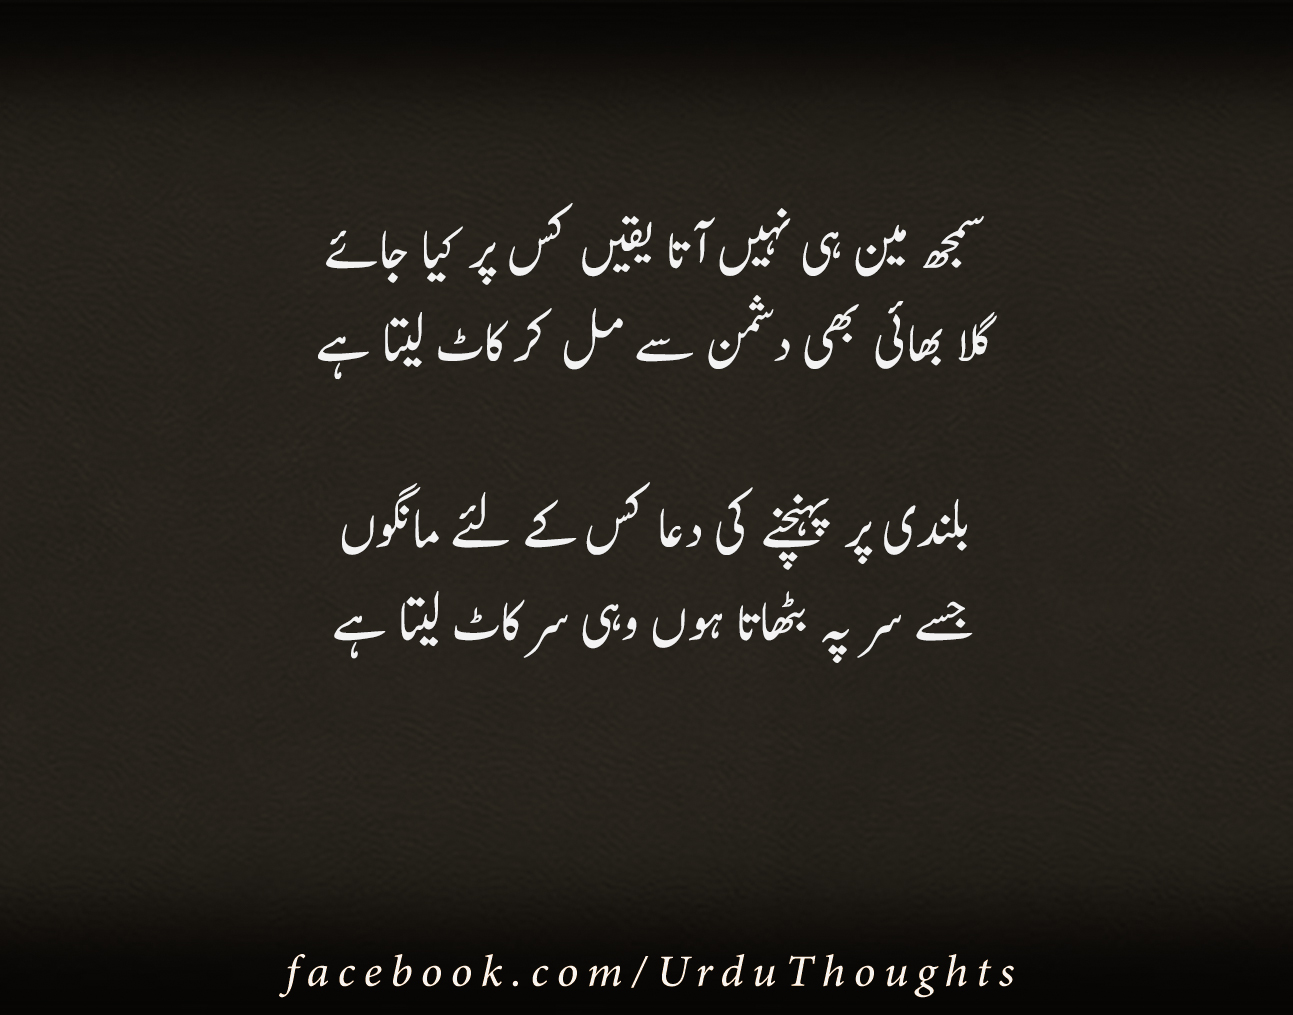 Mix Urdu Poetry Images With Black Background